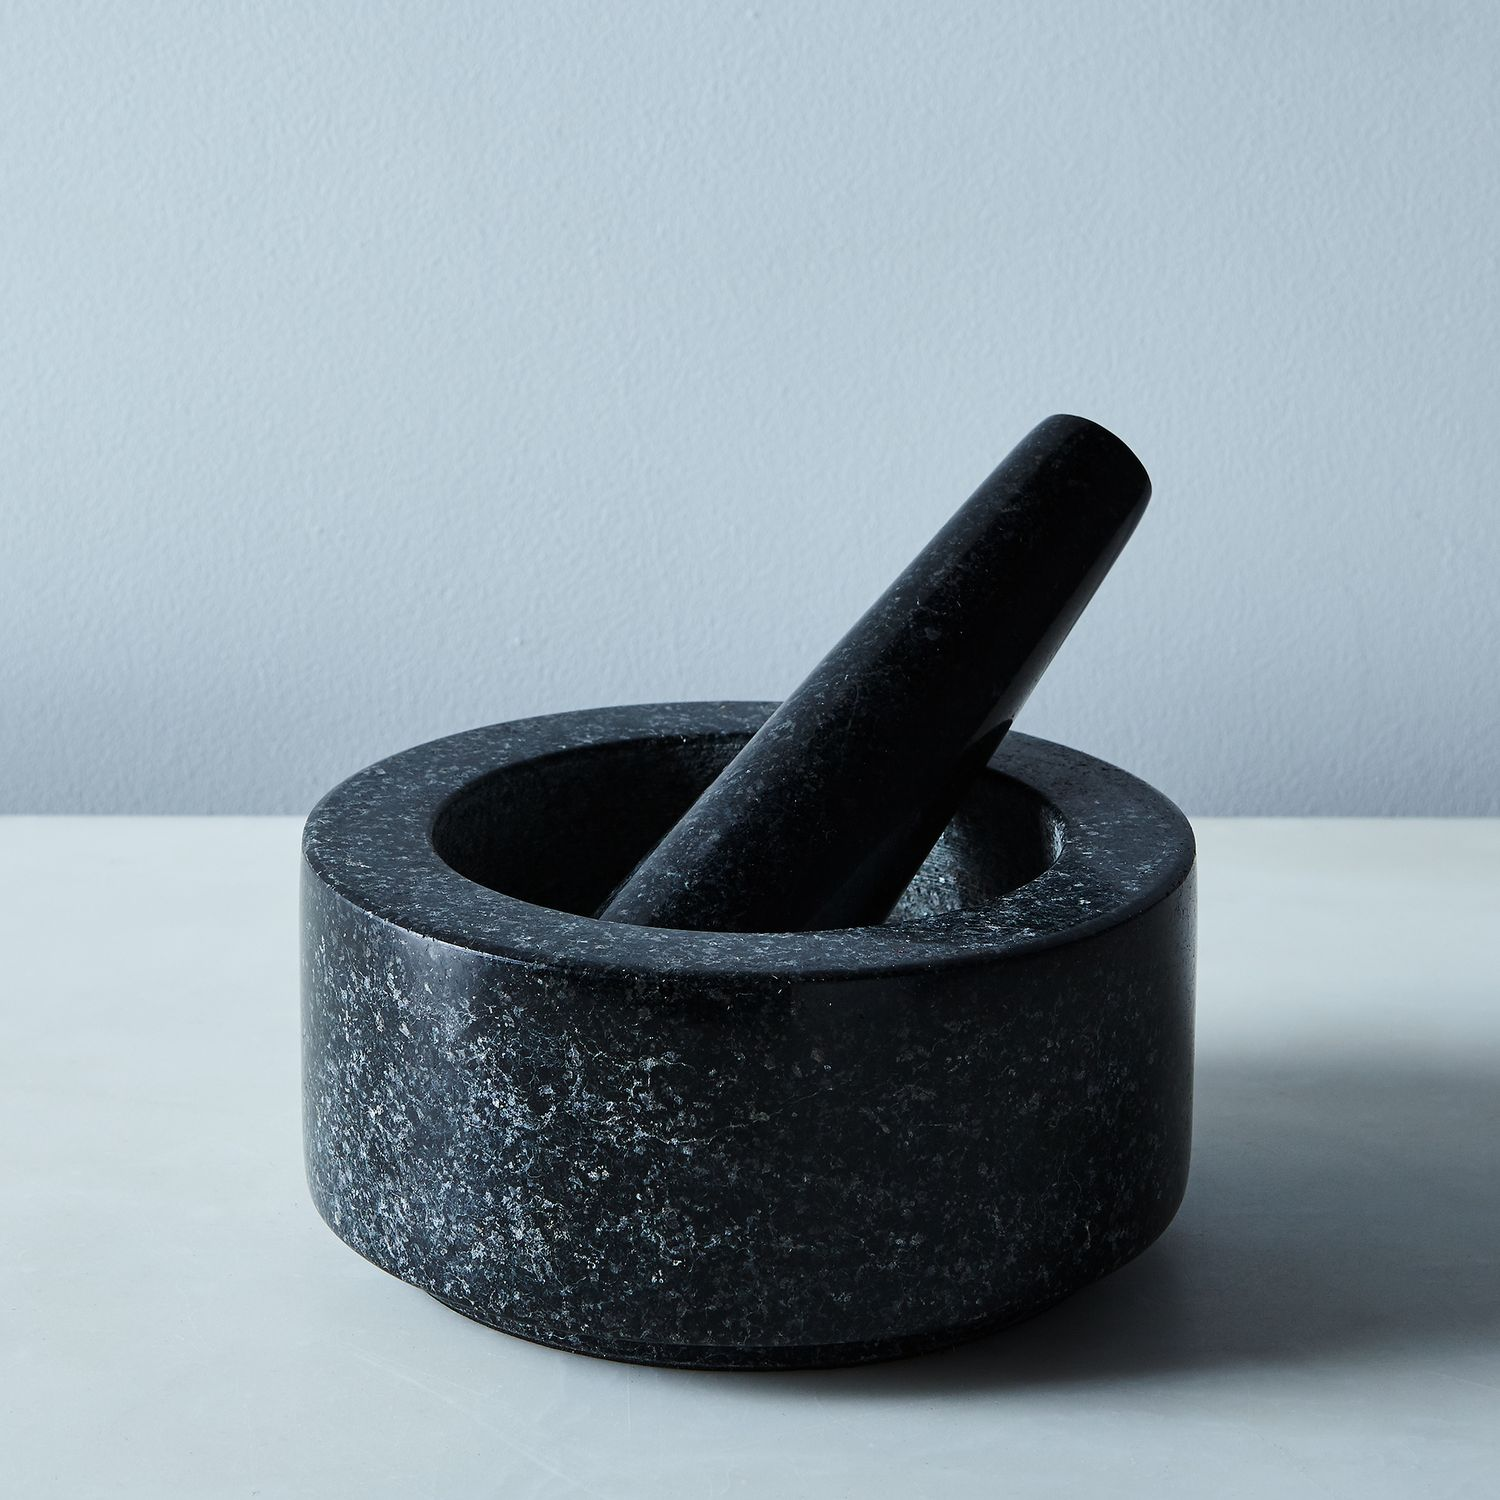 Mortar Pestle Marble Mortar Pestle Kitchen Tools